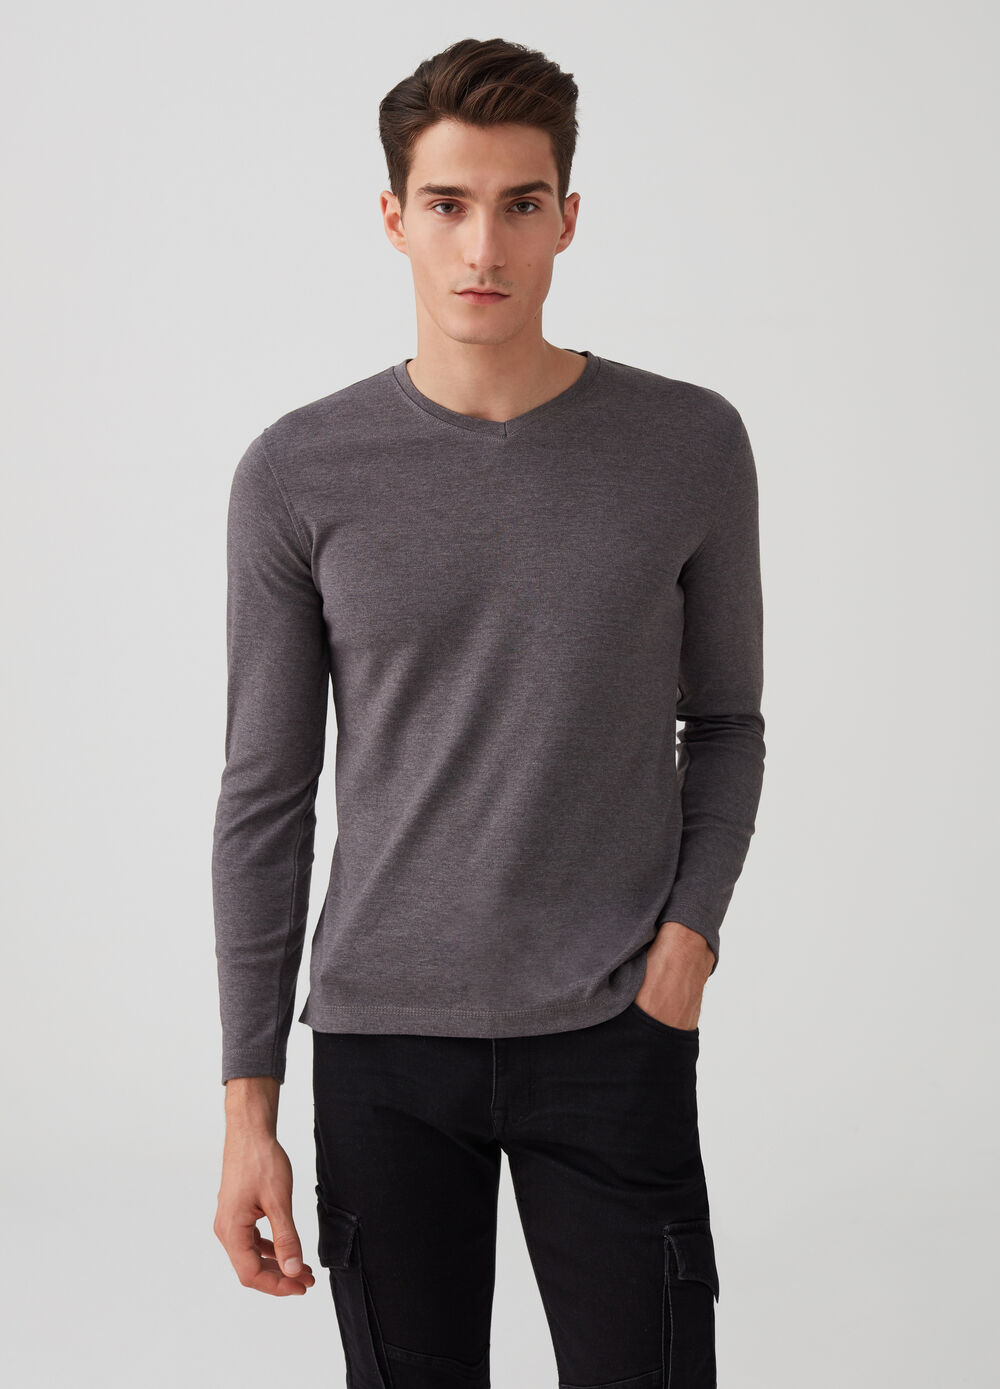 Mélange T-shirt with V-neck and long sleeves